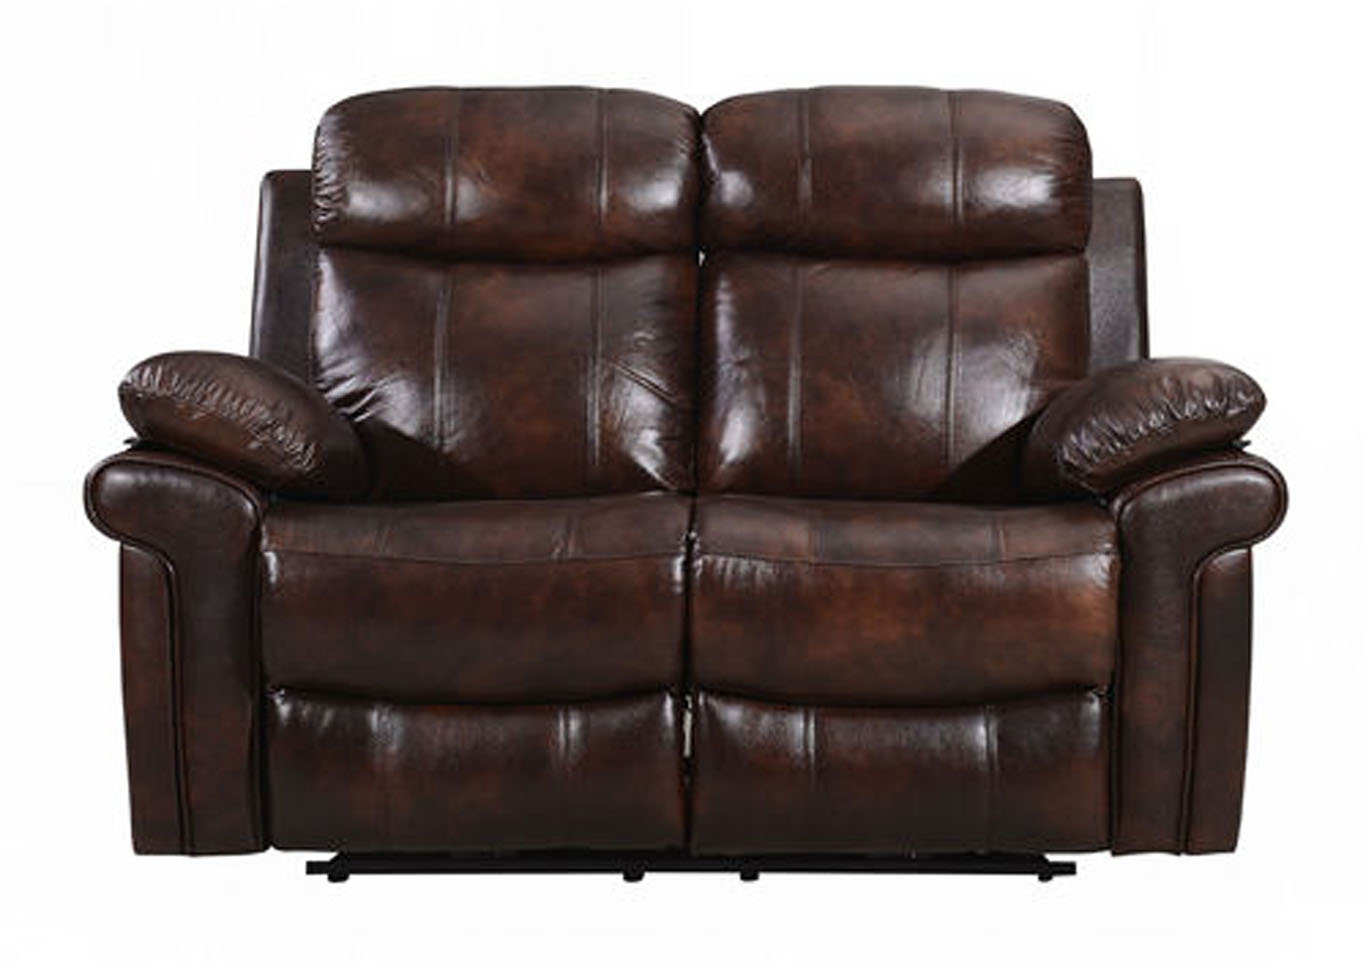 Joplin Top Grain Leather Dual Reclining Power Love Seat - Brown,Instore